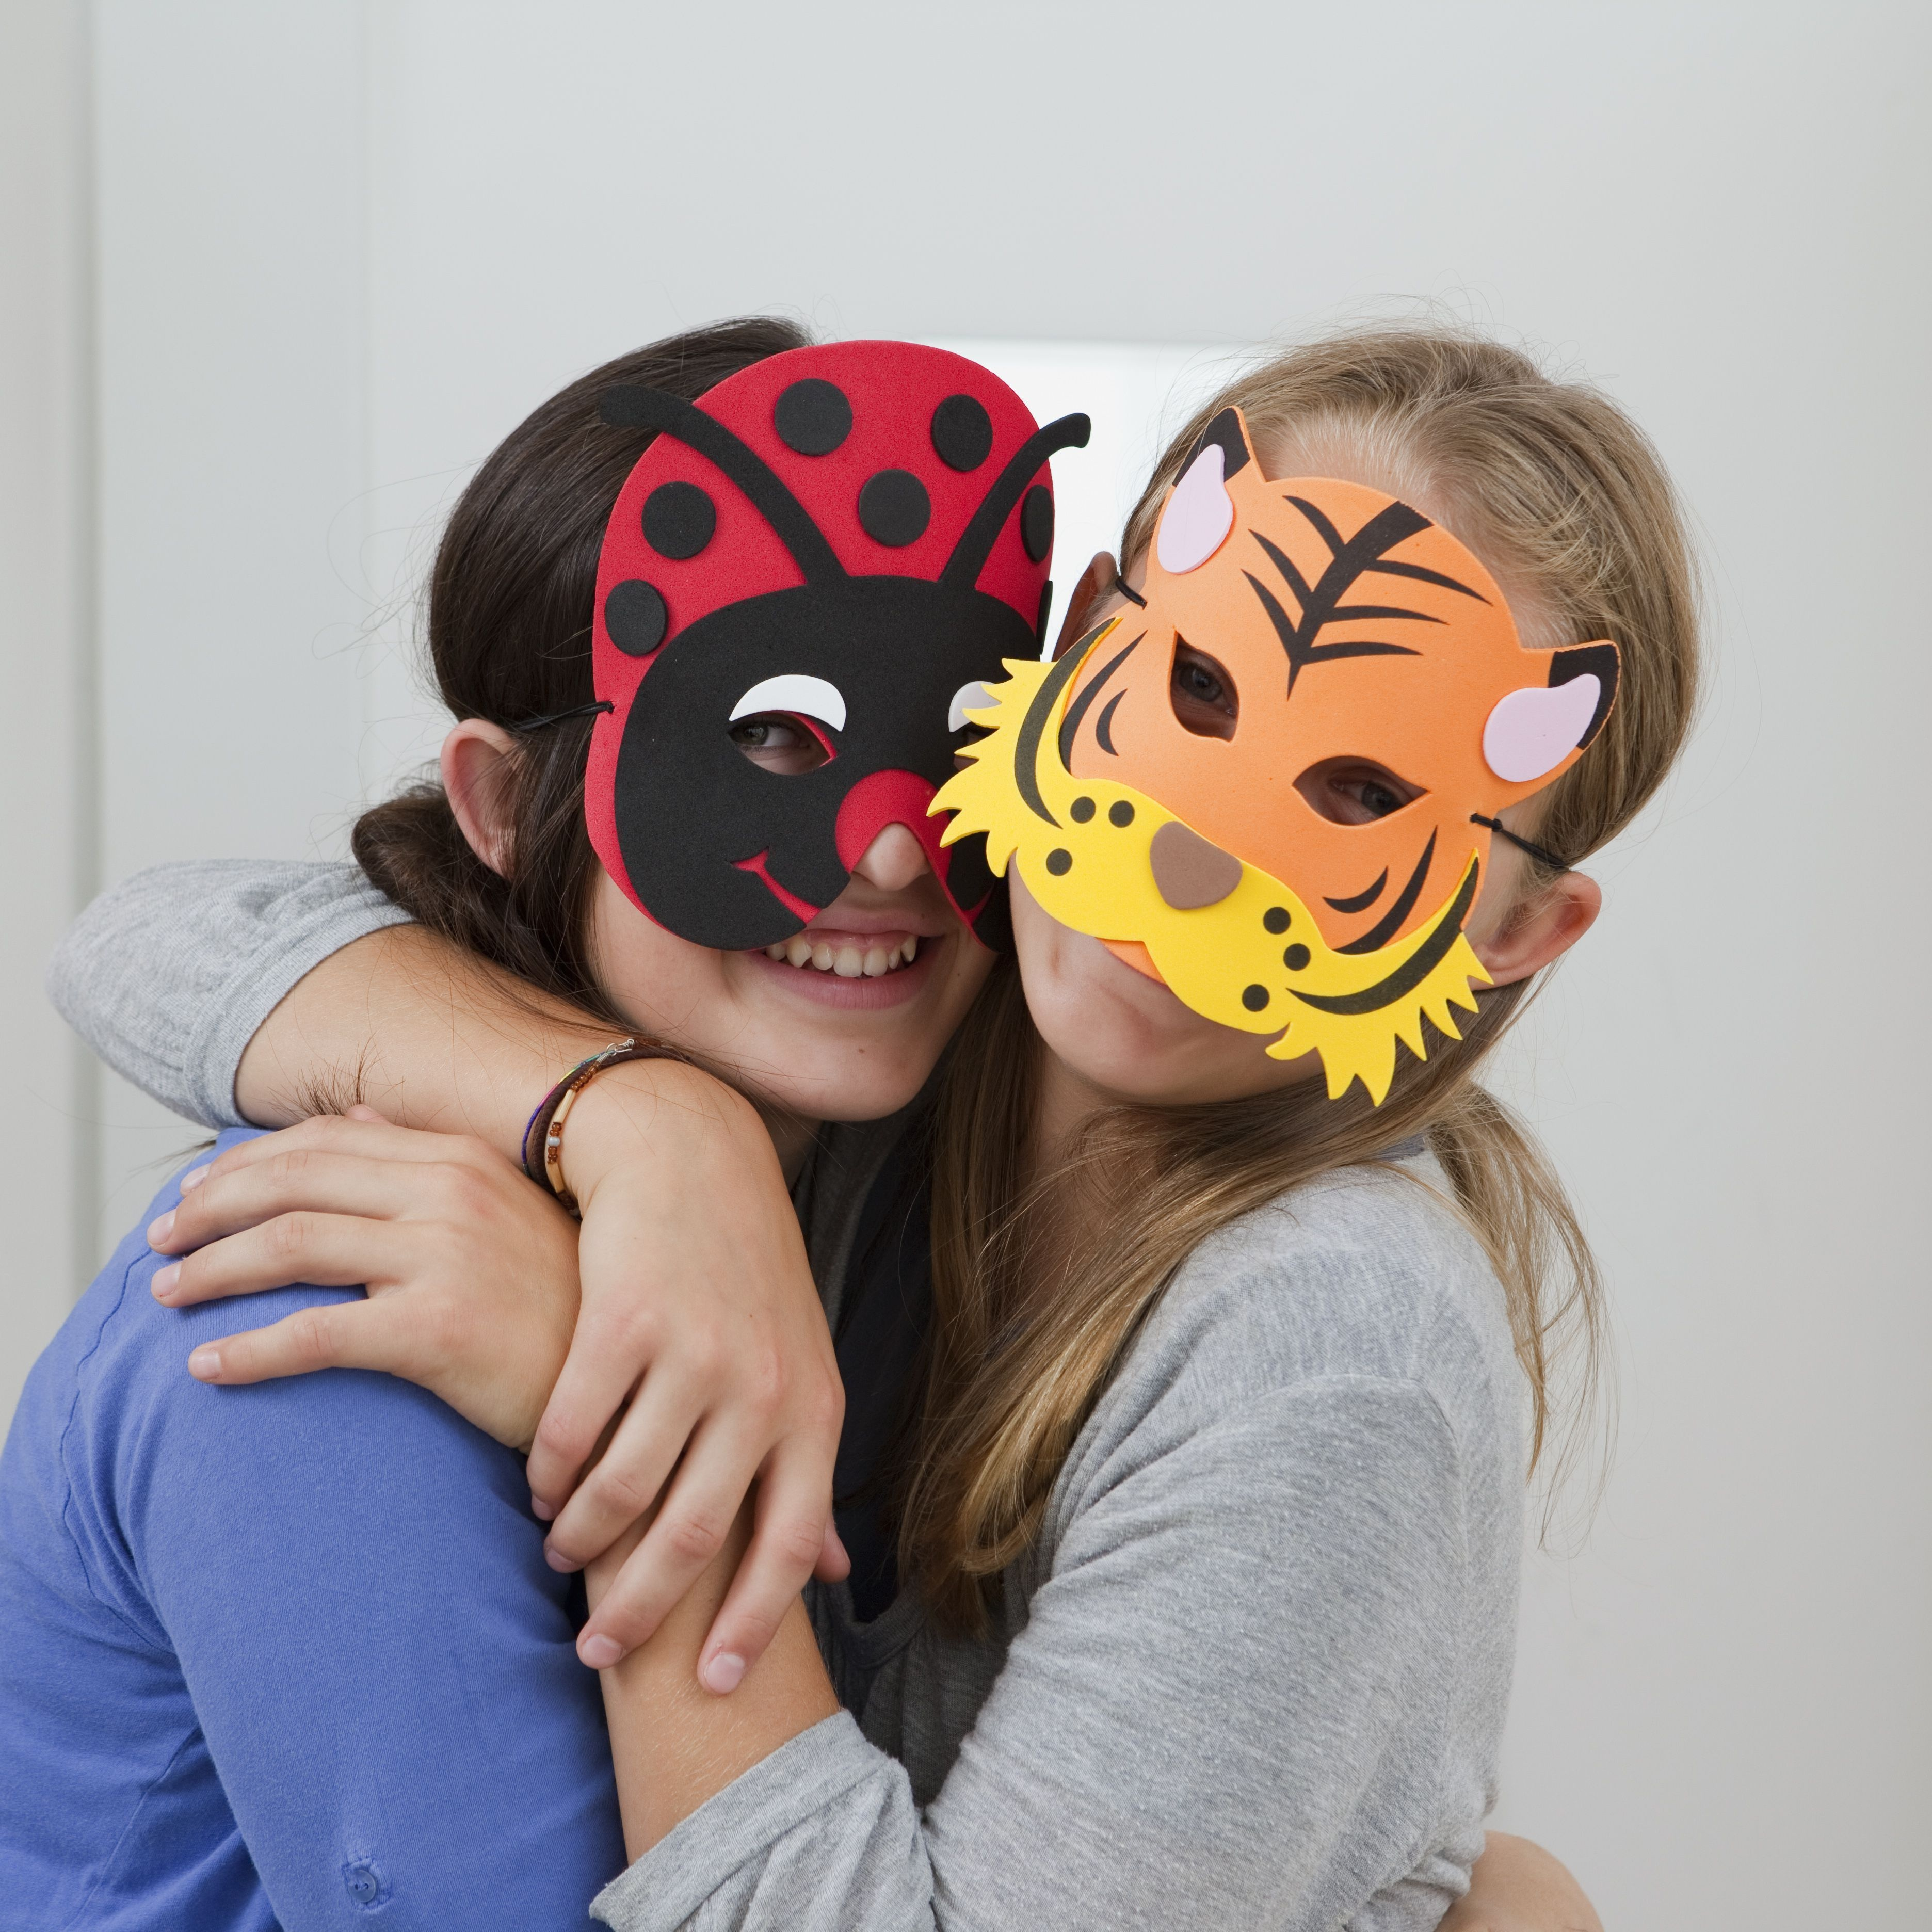 72 Free Printable Halloween Masks For All Ages - Free Printable Halloween Face Masks